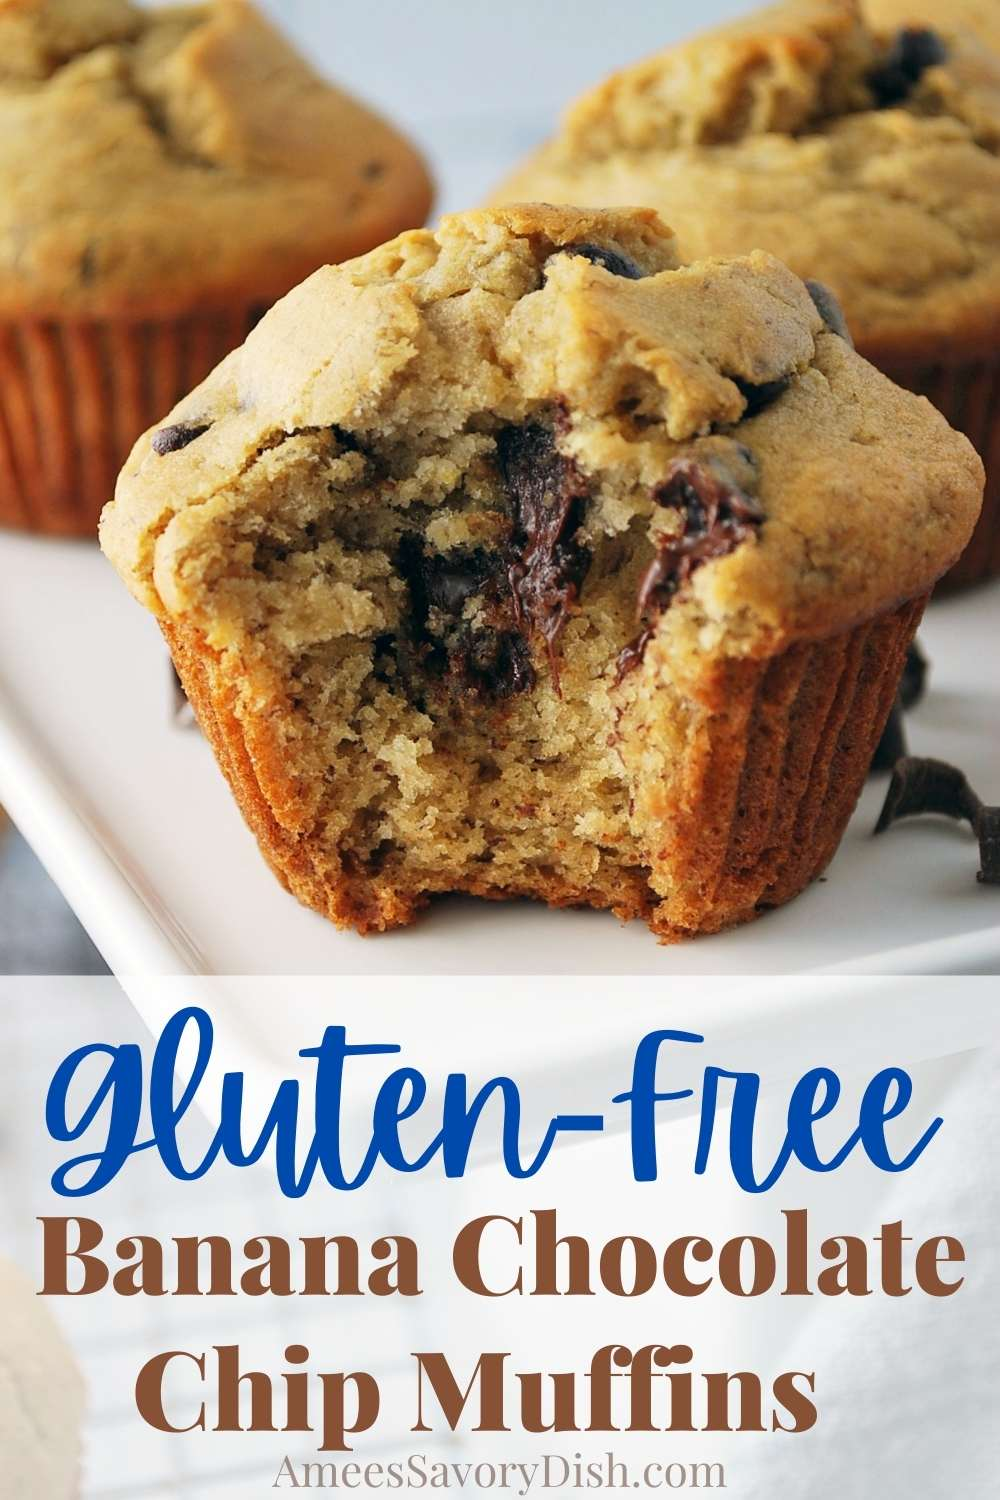 A delicious recipe for gluten-free banana chocolate chip muffins made with ripe bananas and wholesome ingredients that you can find anywhere. via @Ameessavorydish